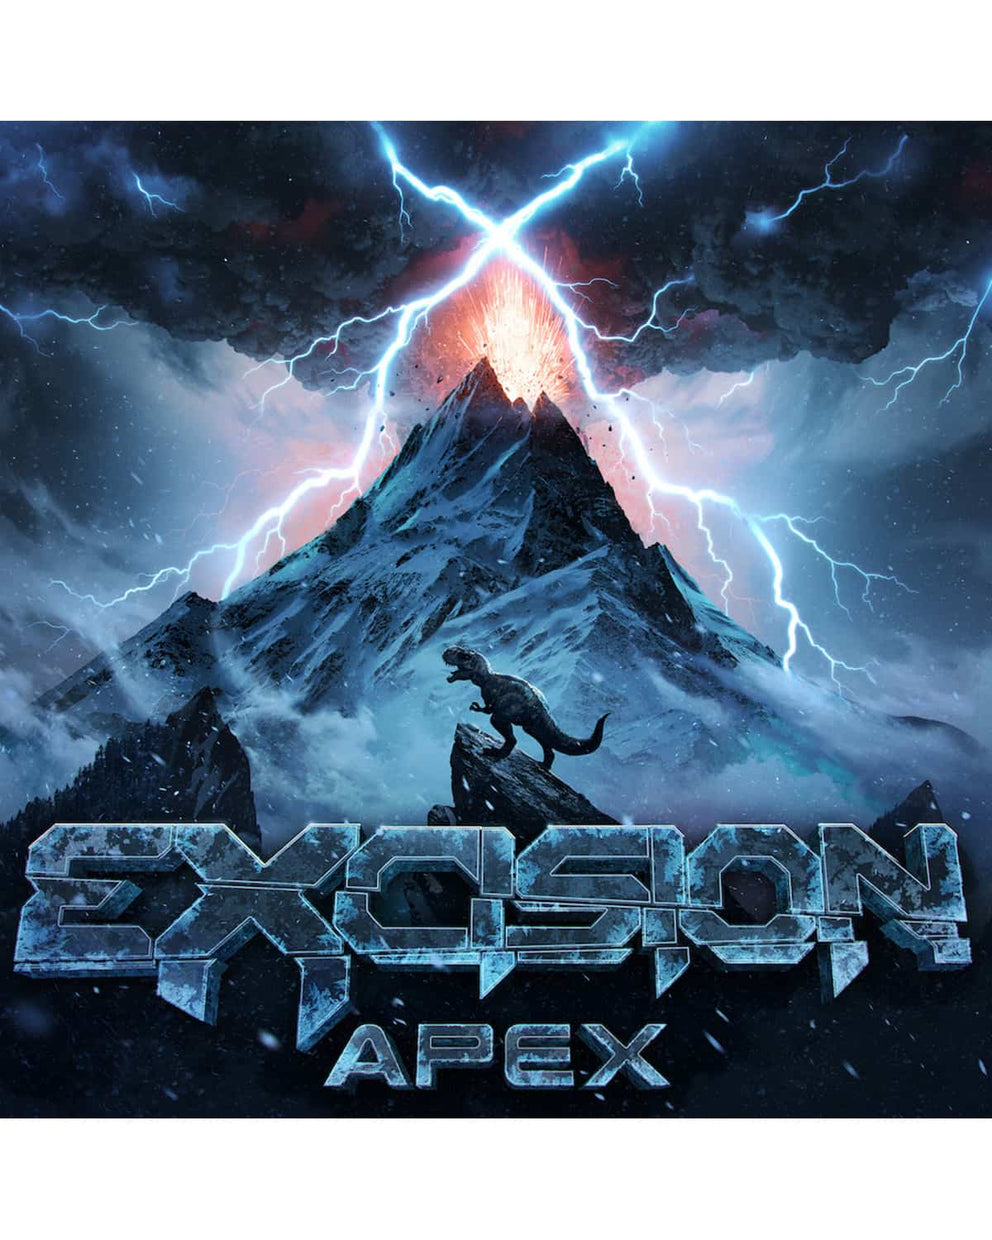 Excision 'APEX' T-Shirt + Album Bundle (Includes MP3 Download)